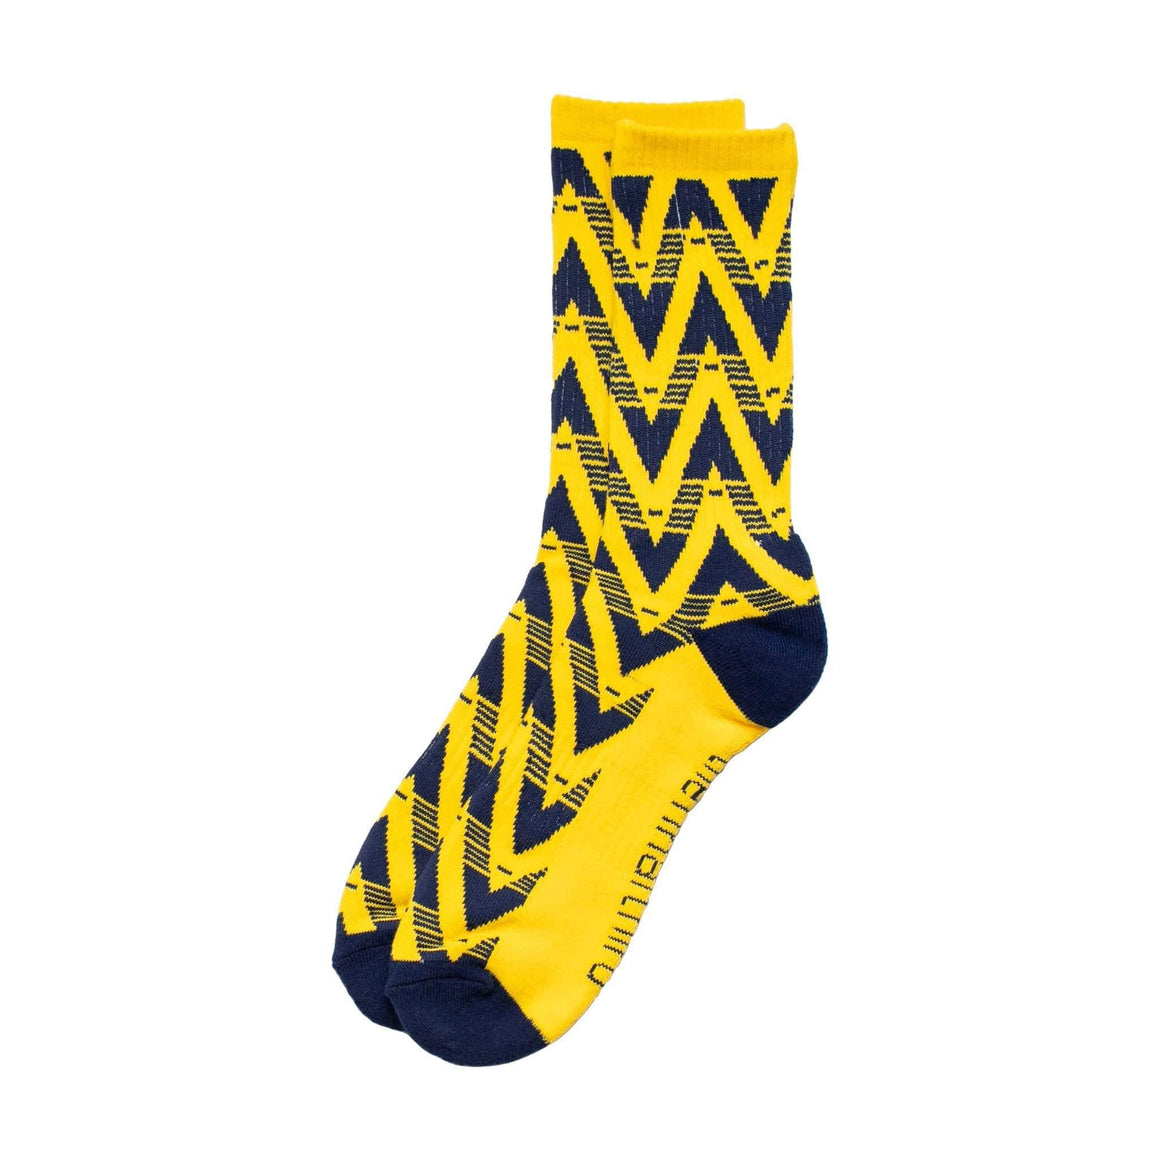 The Final Third Bruised banana 1991-93 Arsenal socks - The Final Third